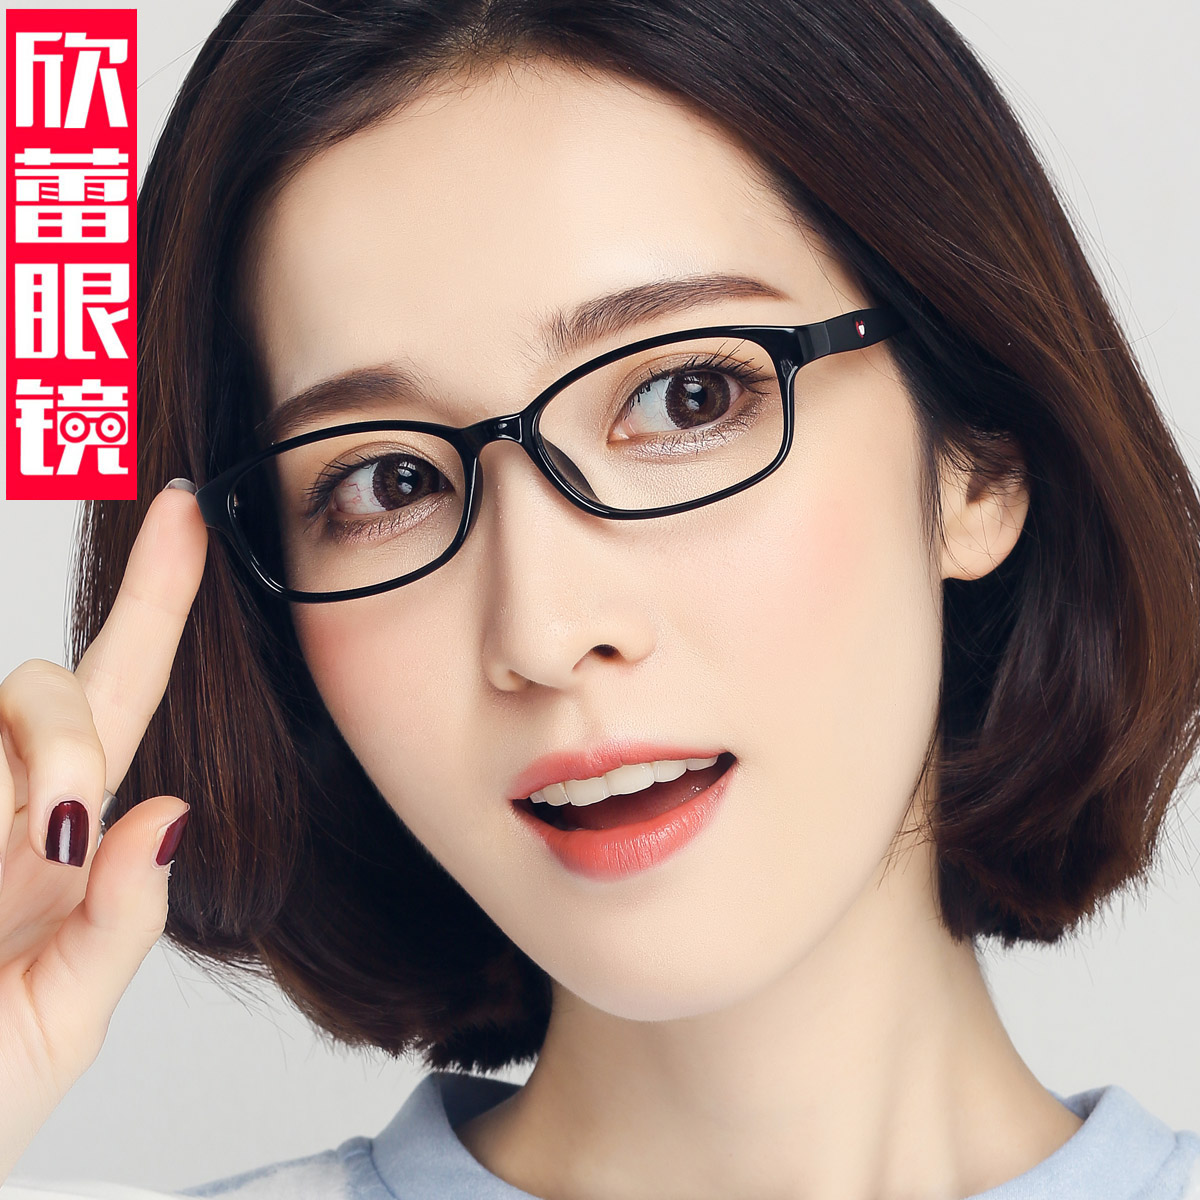 571ffab1665 Finished myopia glasses female ultra-light small face height number of  glasses frame myopia female models glasses frame female frame tide students